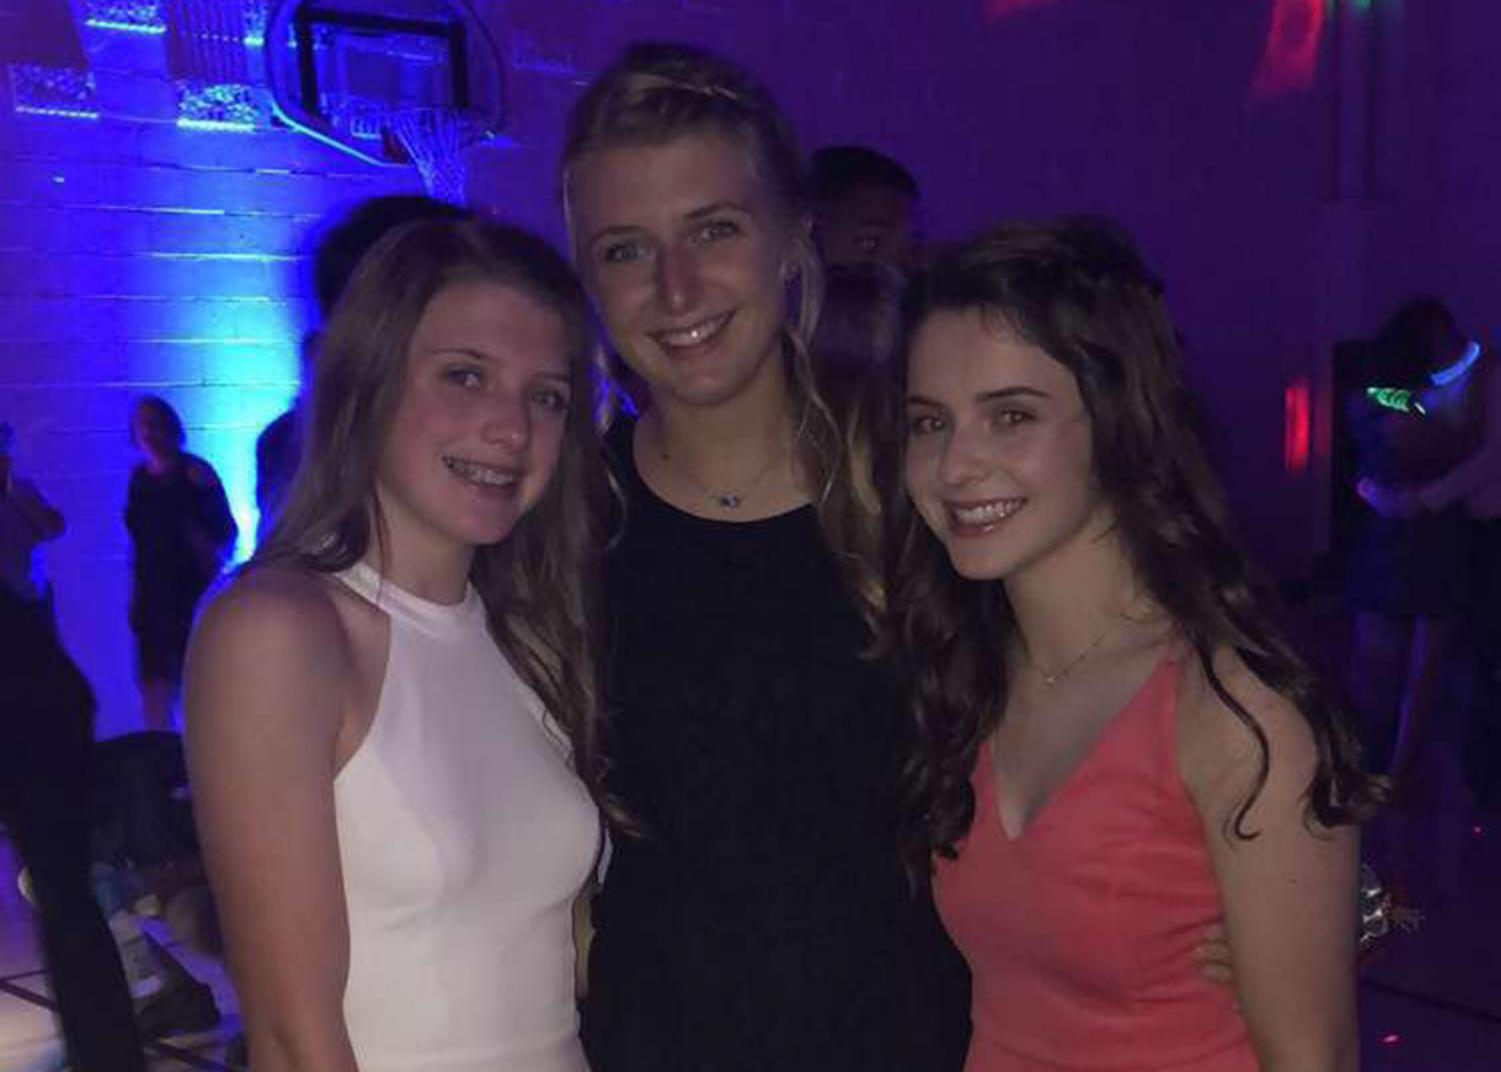 The Robben sisters (left to right) freshman Caroline, junior Isabel and sophomore Maggie go to their first of many high school dances together.